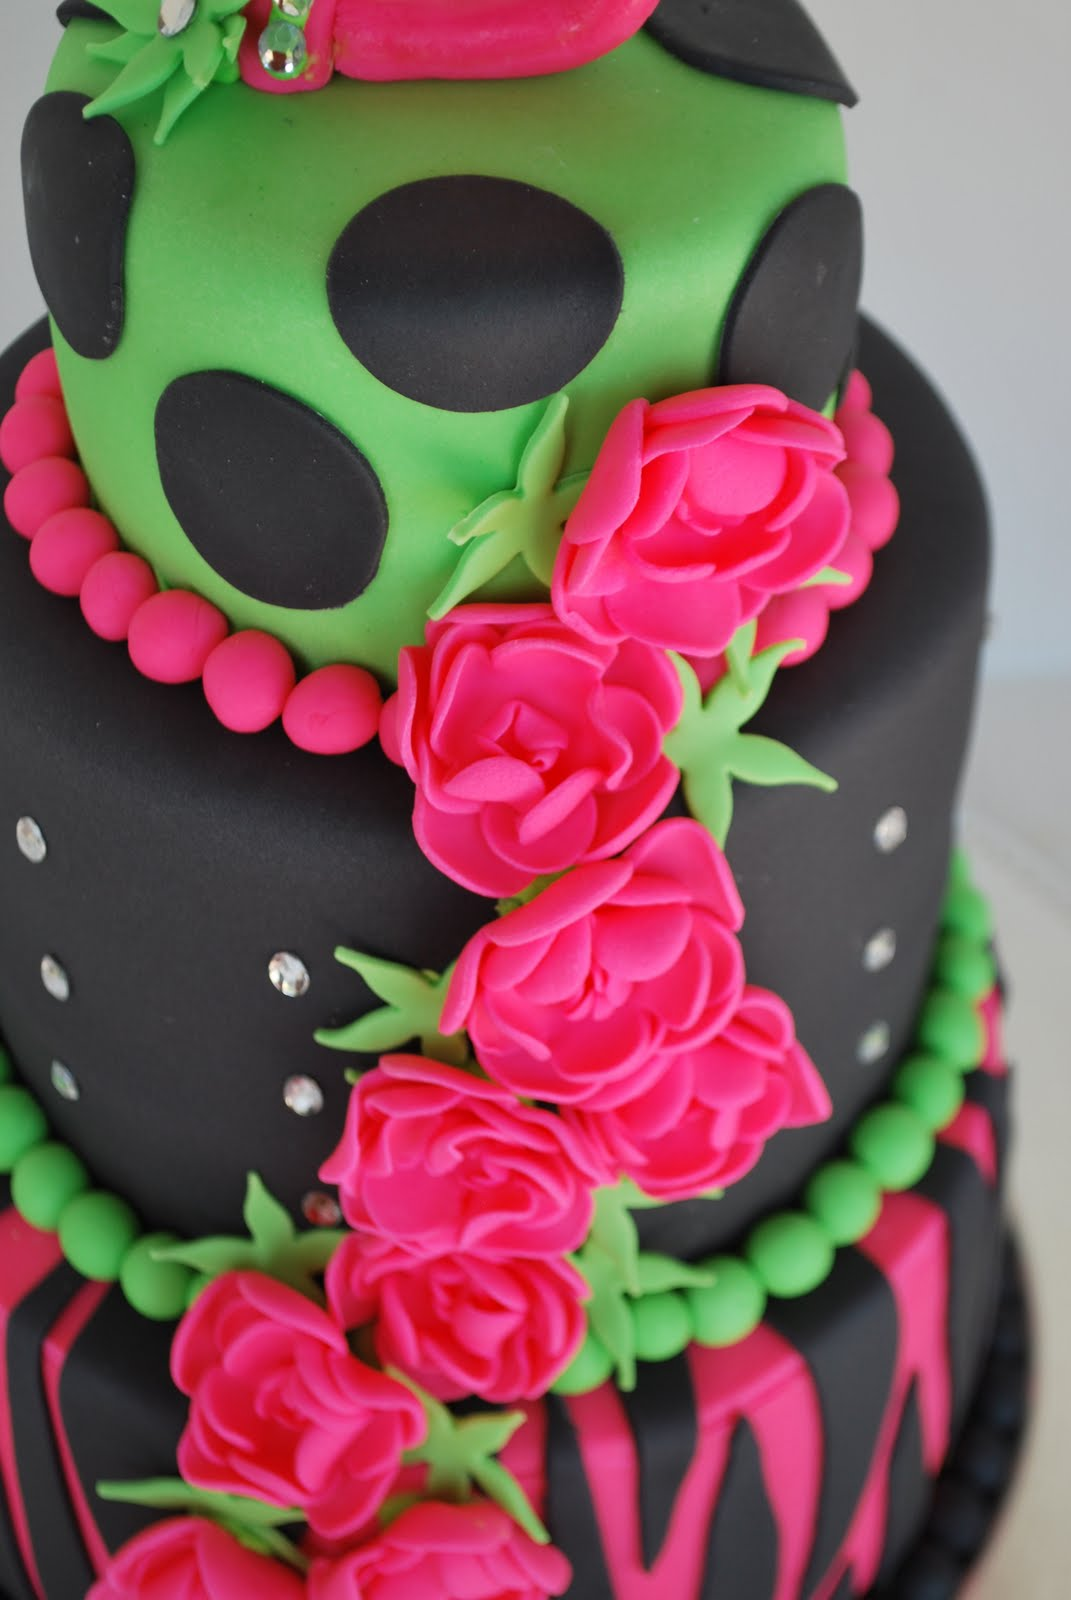 Rock Girl Birthday Cake http://cakestudioonline.blogspot.com/2012/01/rock-star-birthday-girl.html